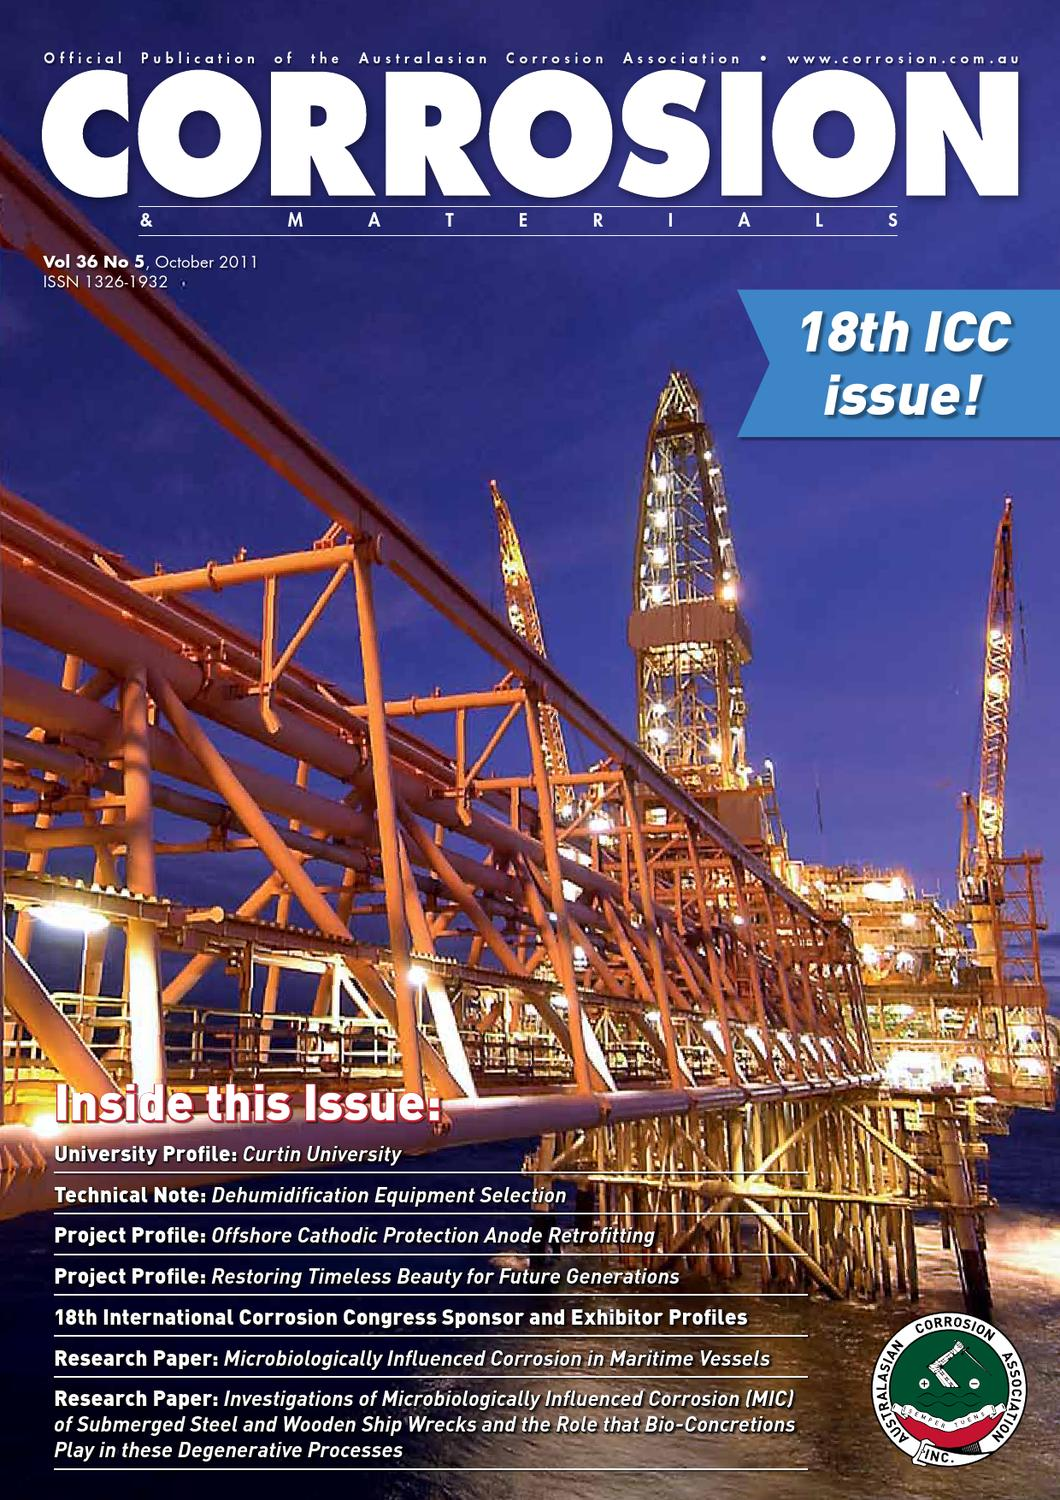 Corrosion & Materials October 2011 by Australasian Corrosion